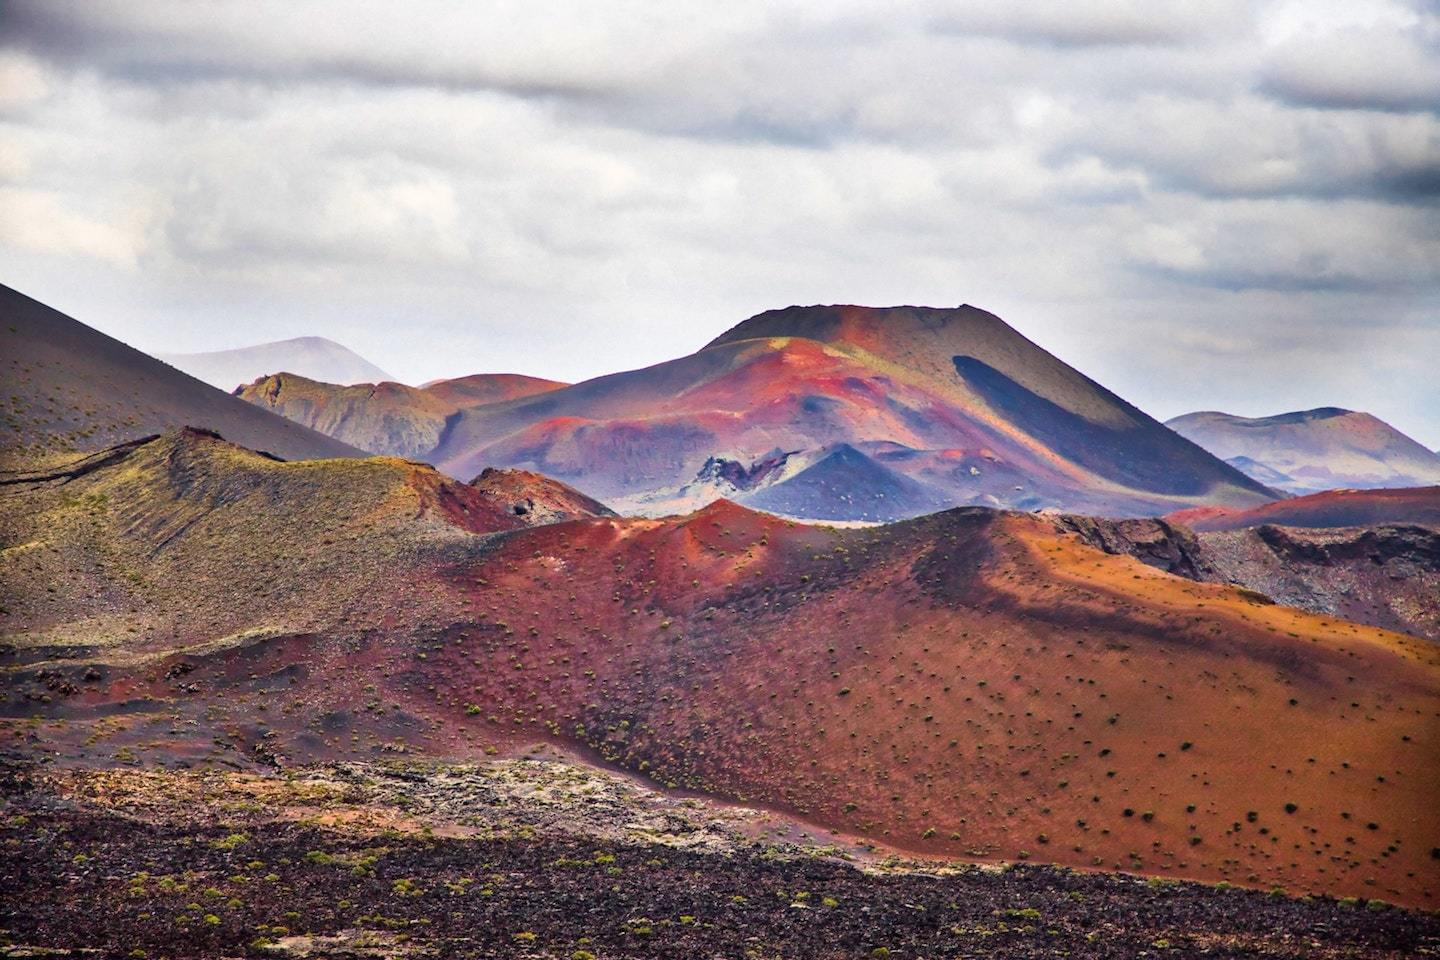 rainbow colored volcanic landscape with cloudy sky